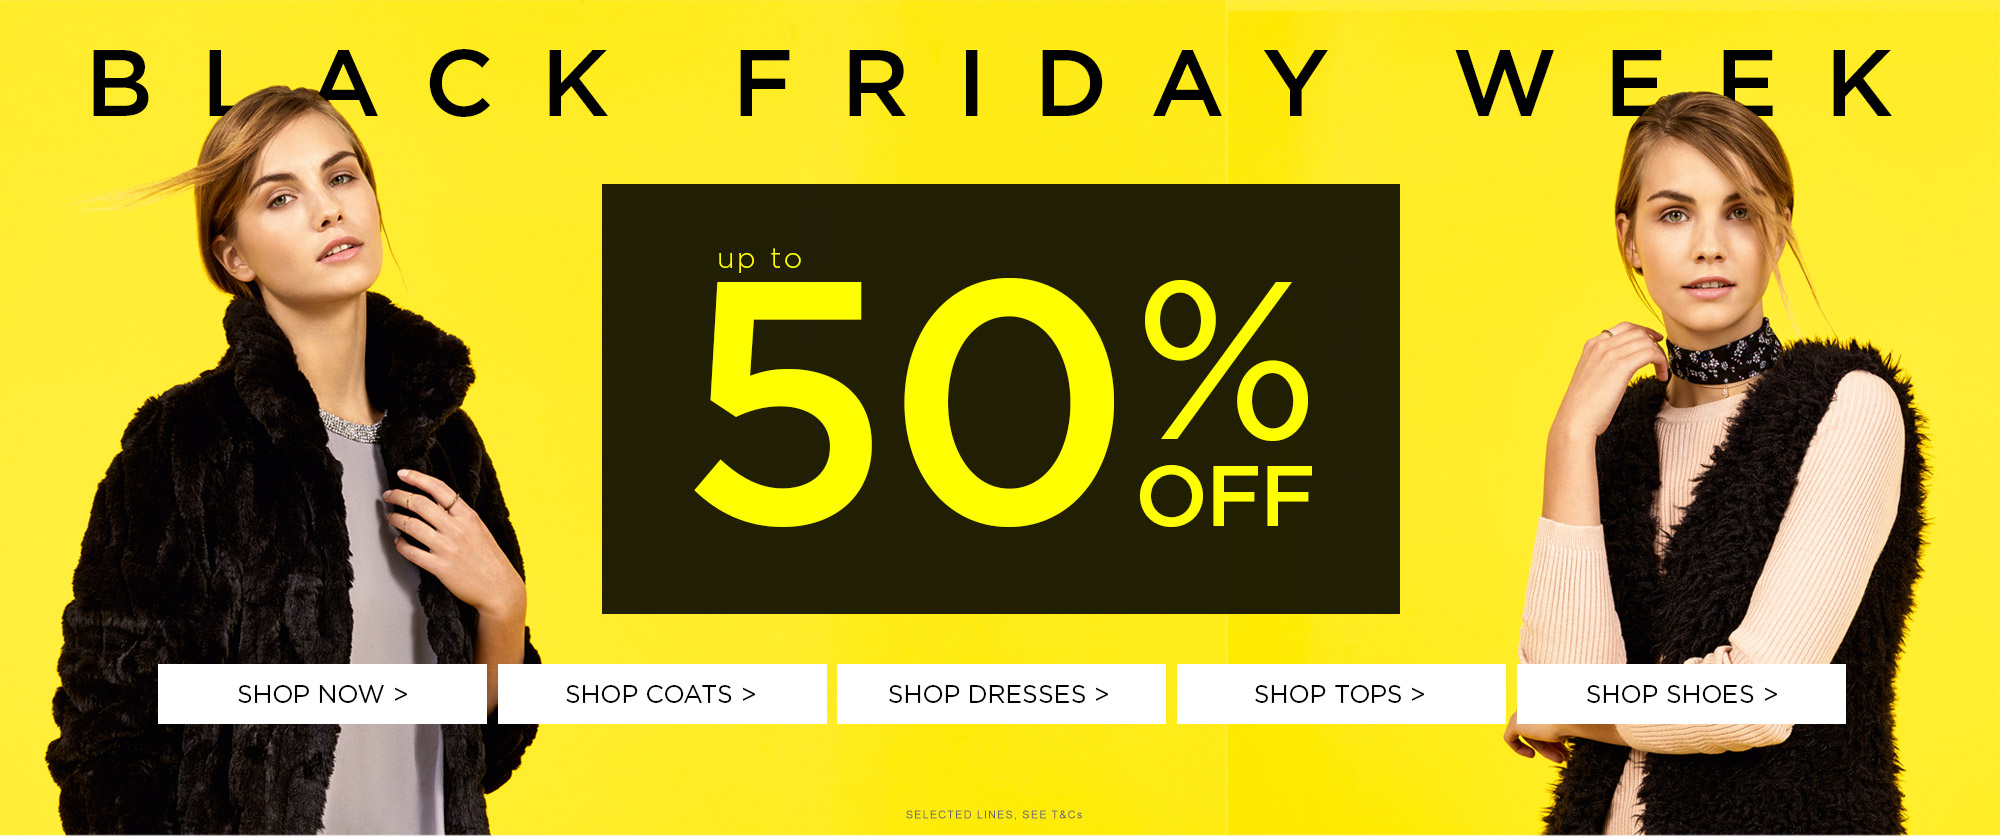 Black Friday Dorothy Perkins: up to 50% off clothing